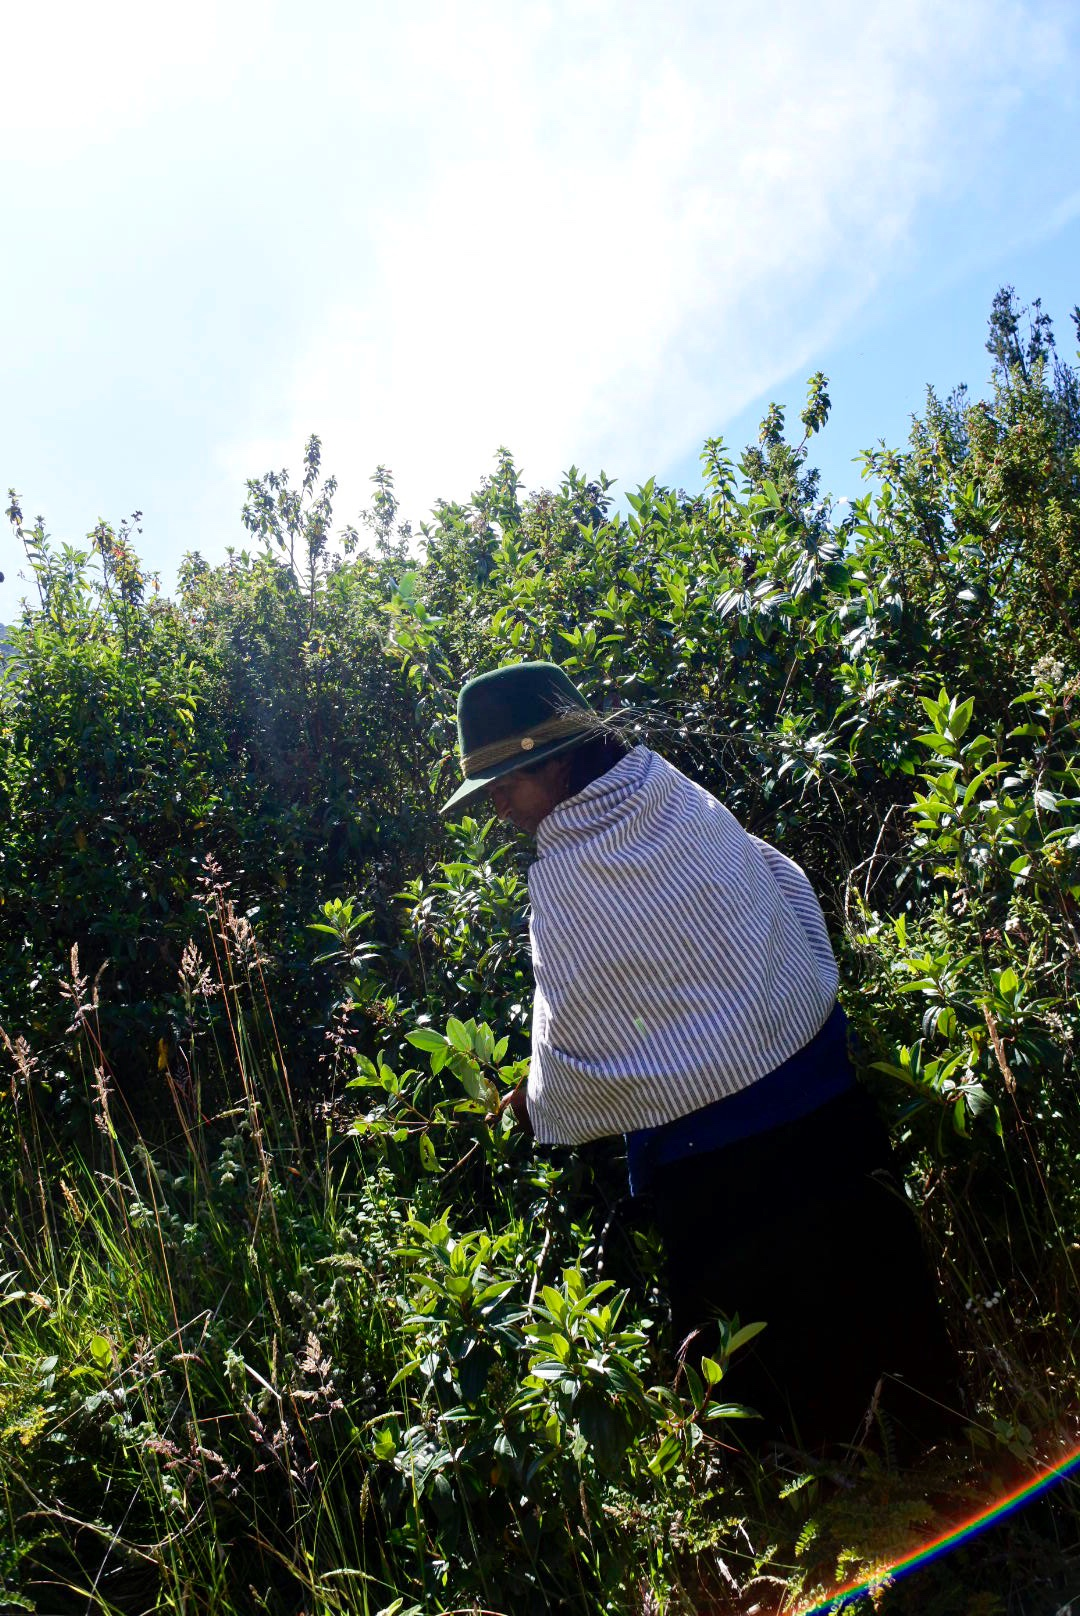 María is looking for Culcas, a plant used for its bright yellow pigment.